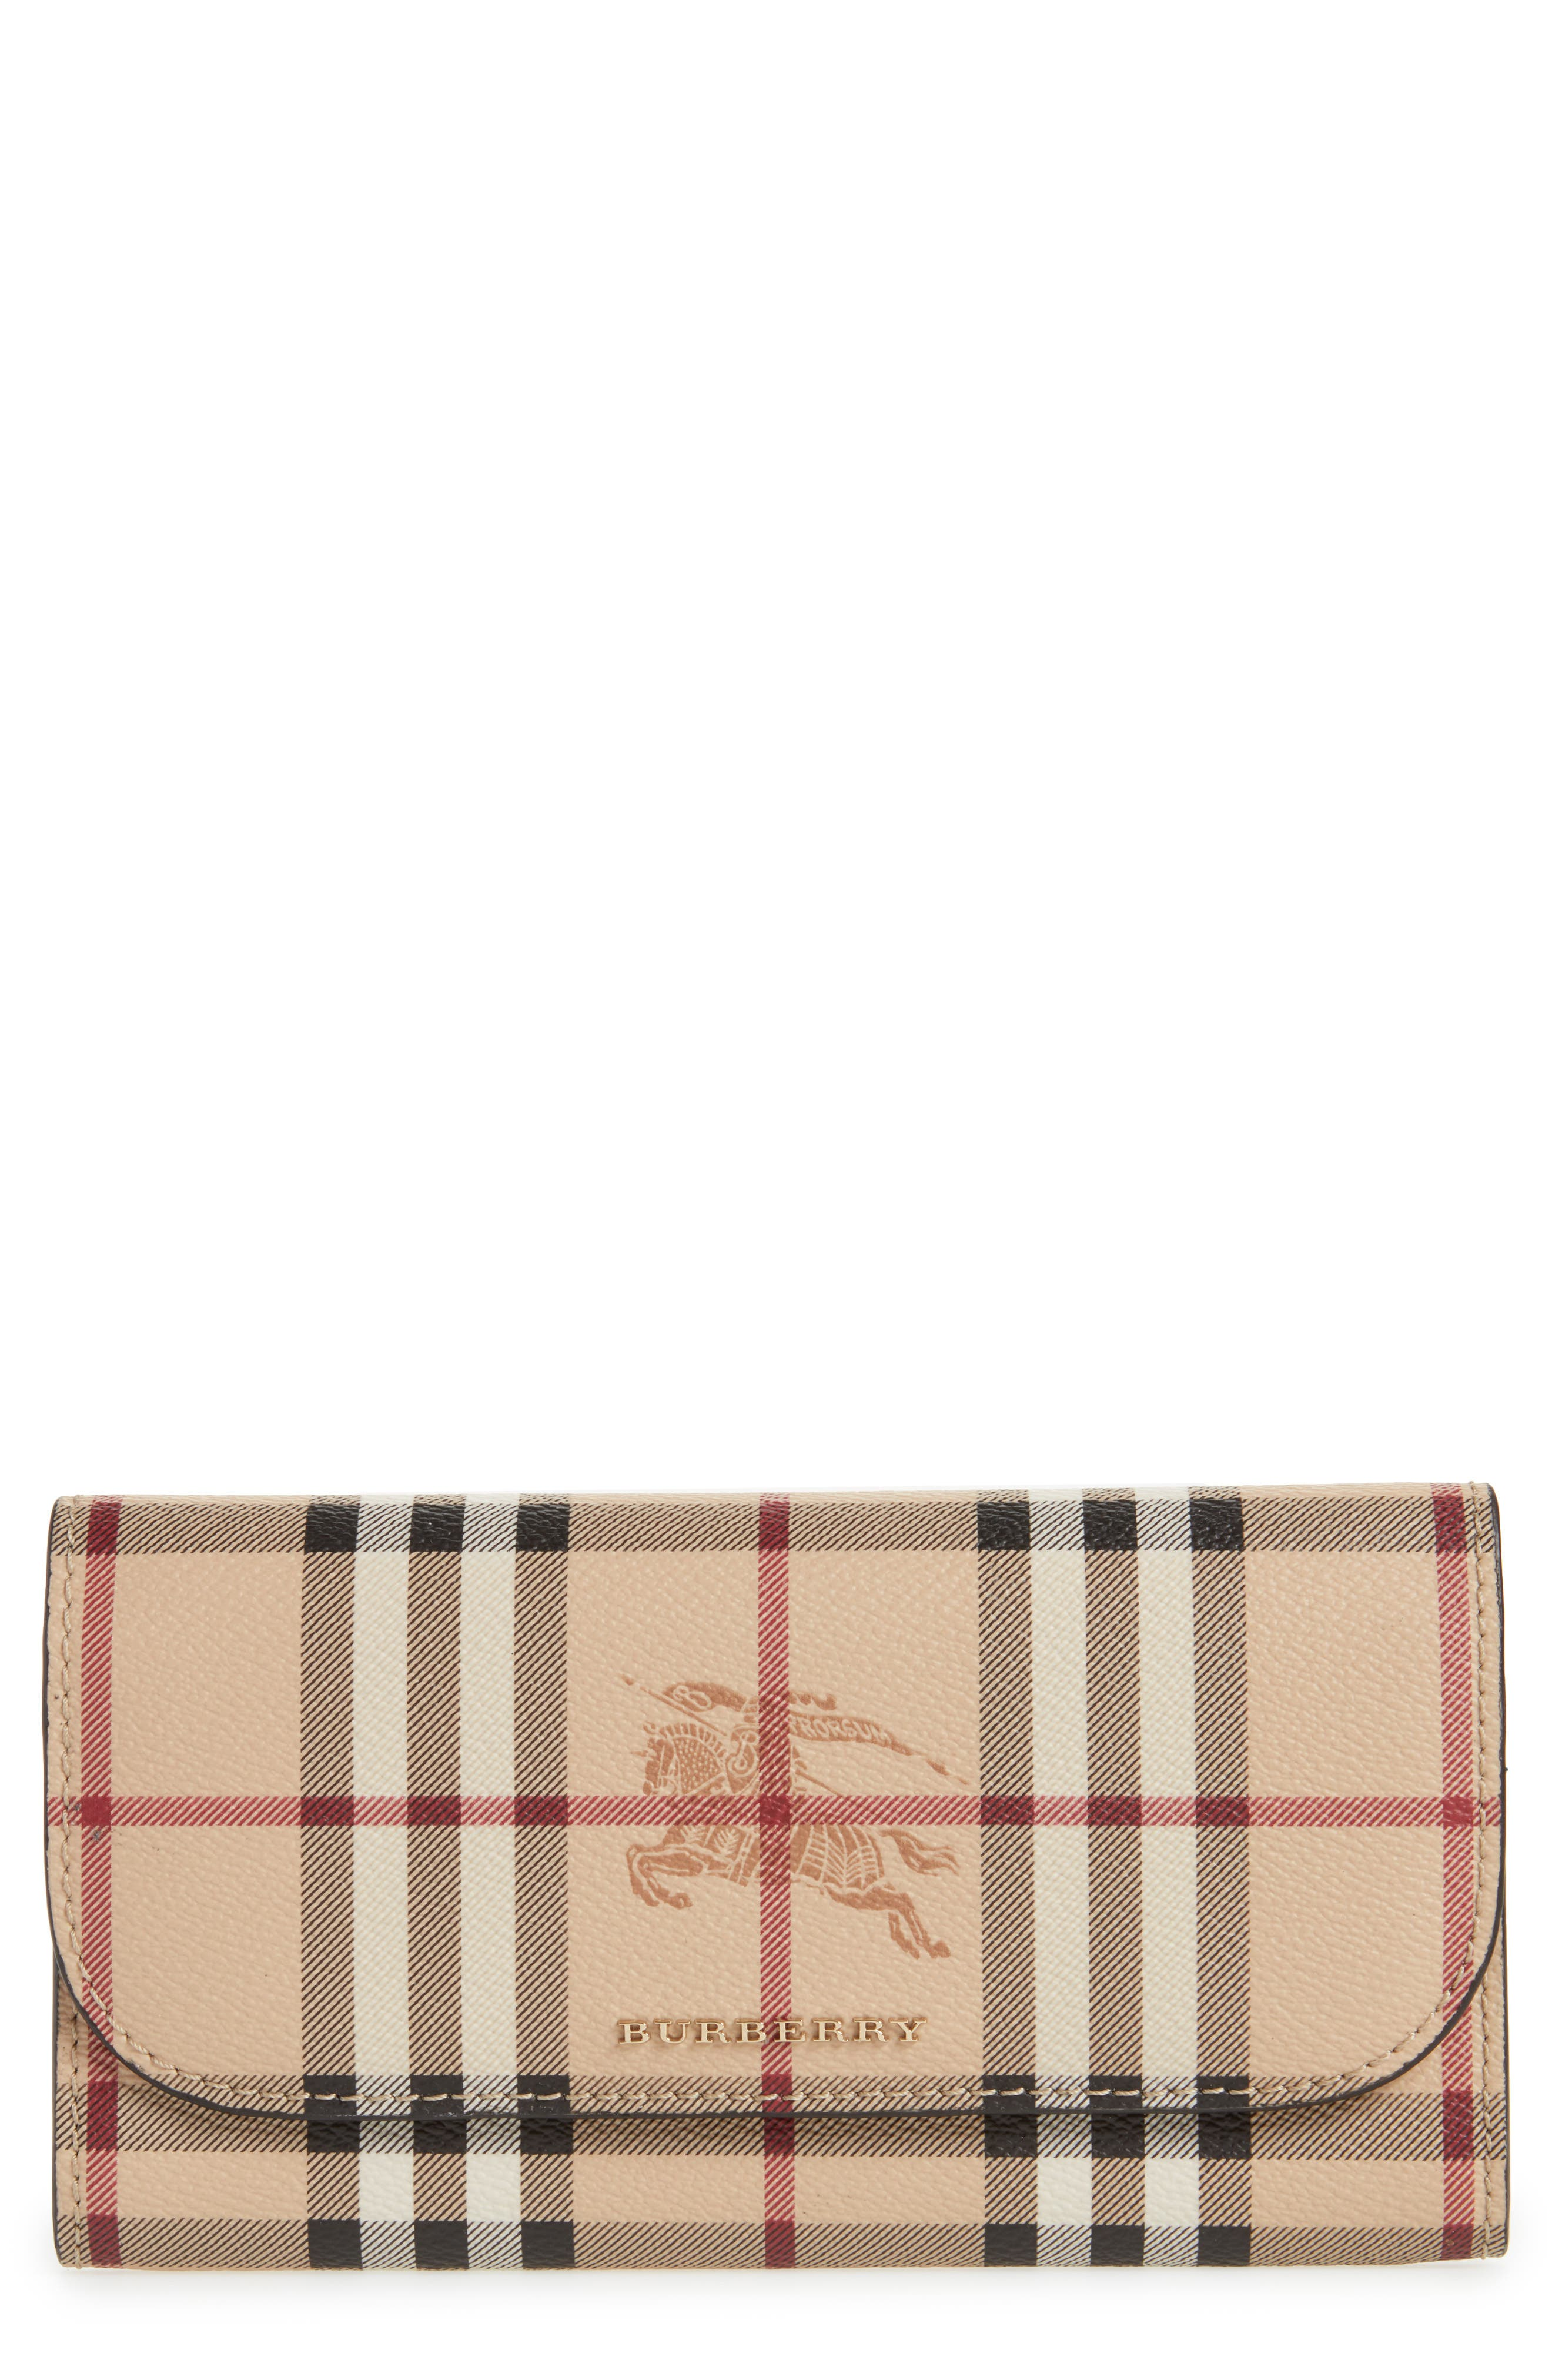 Harris Check Faux Leather Wallet,                         Main,                         color,